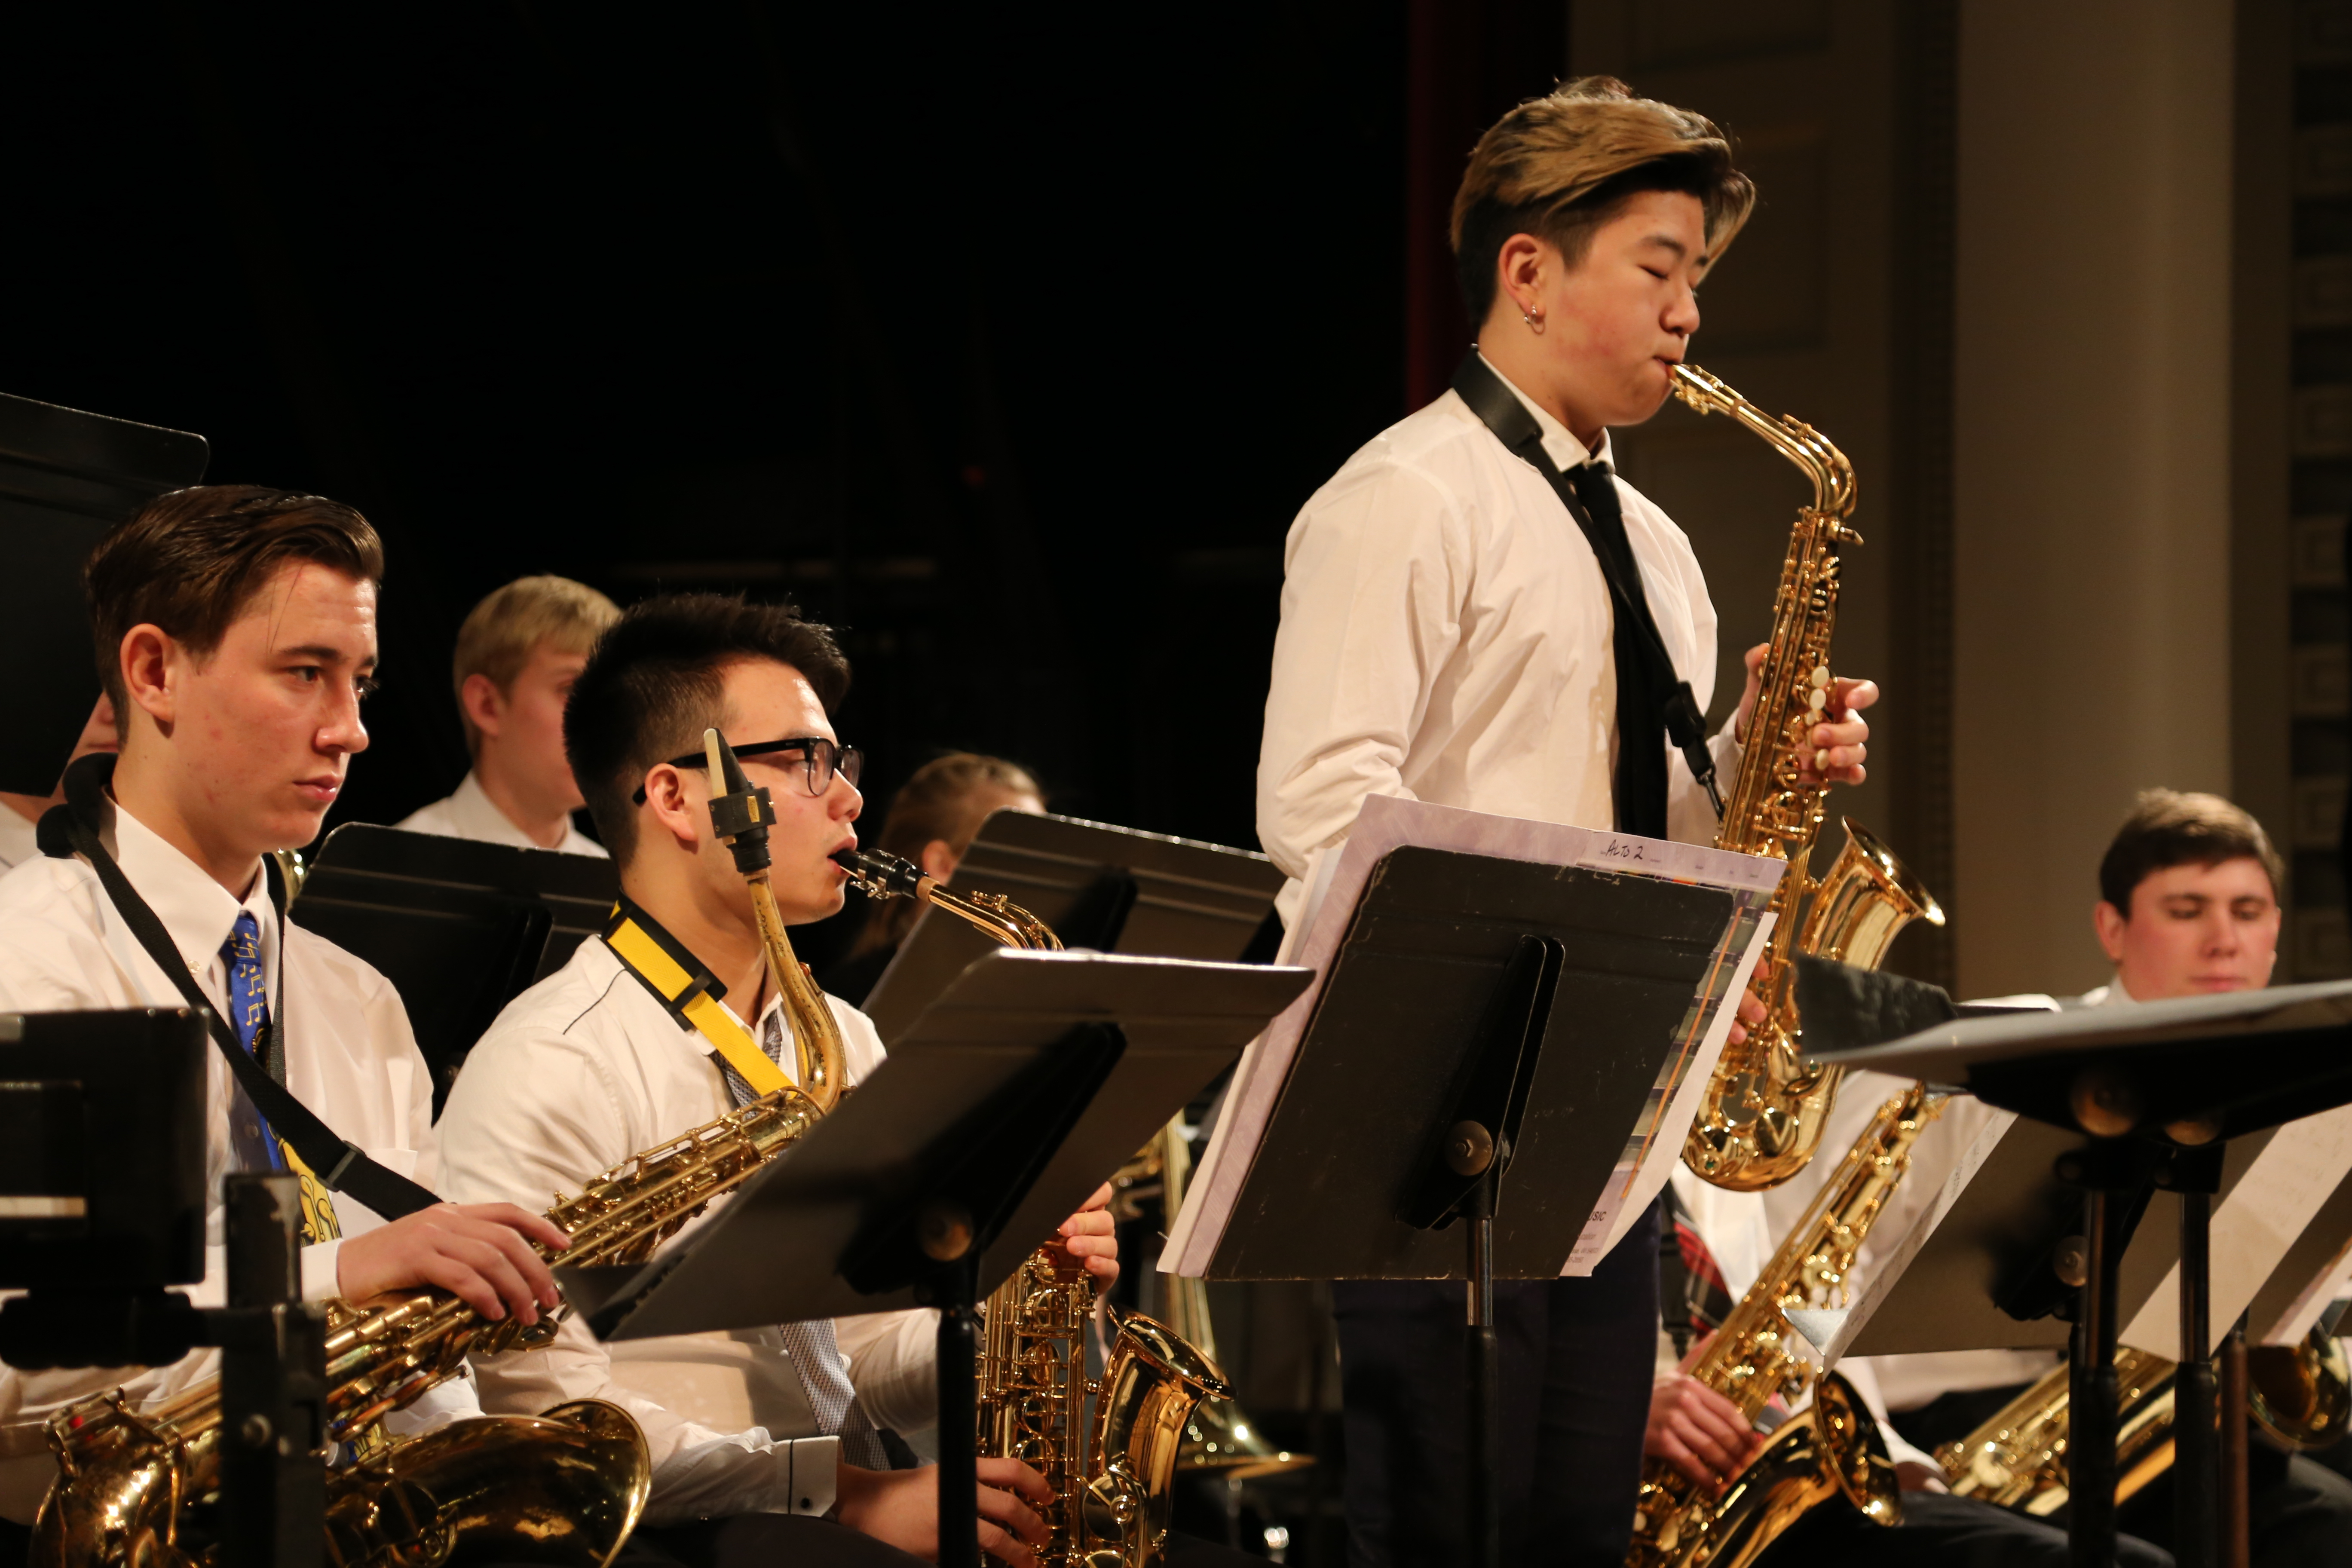 Cotter Schools Photo - Cotter Schools offers a variety of musical offerings: Jazz Band, Concert Band, Show Choir, and Choir. Concerts are performed throughout the school year.